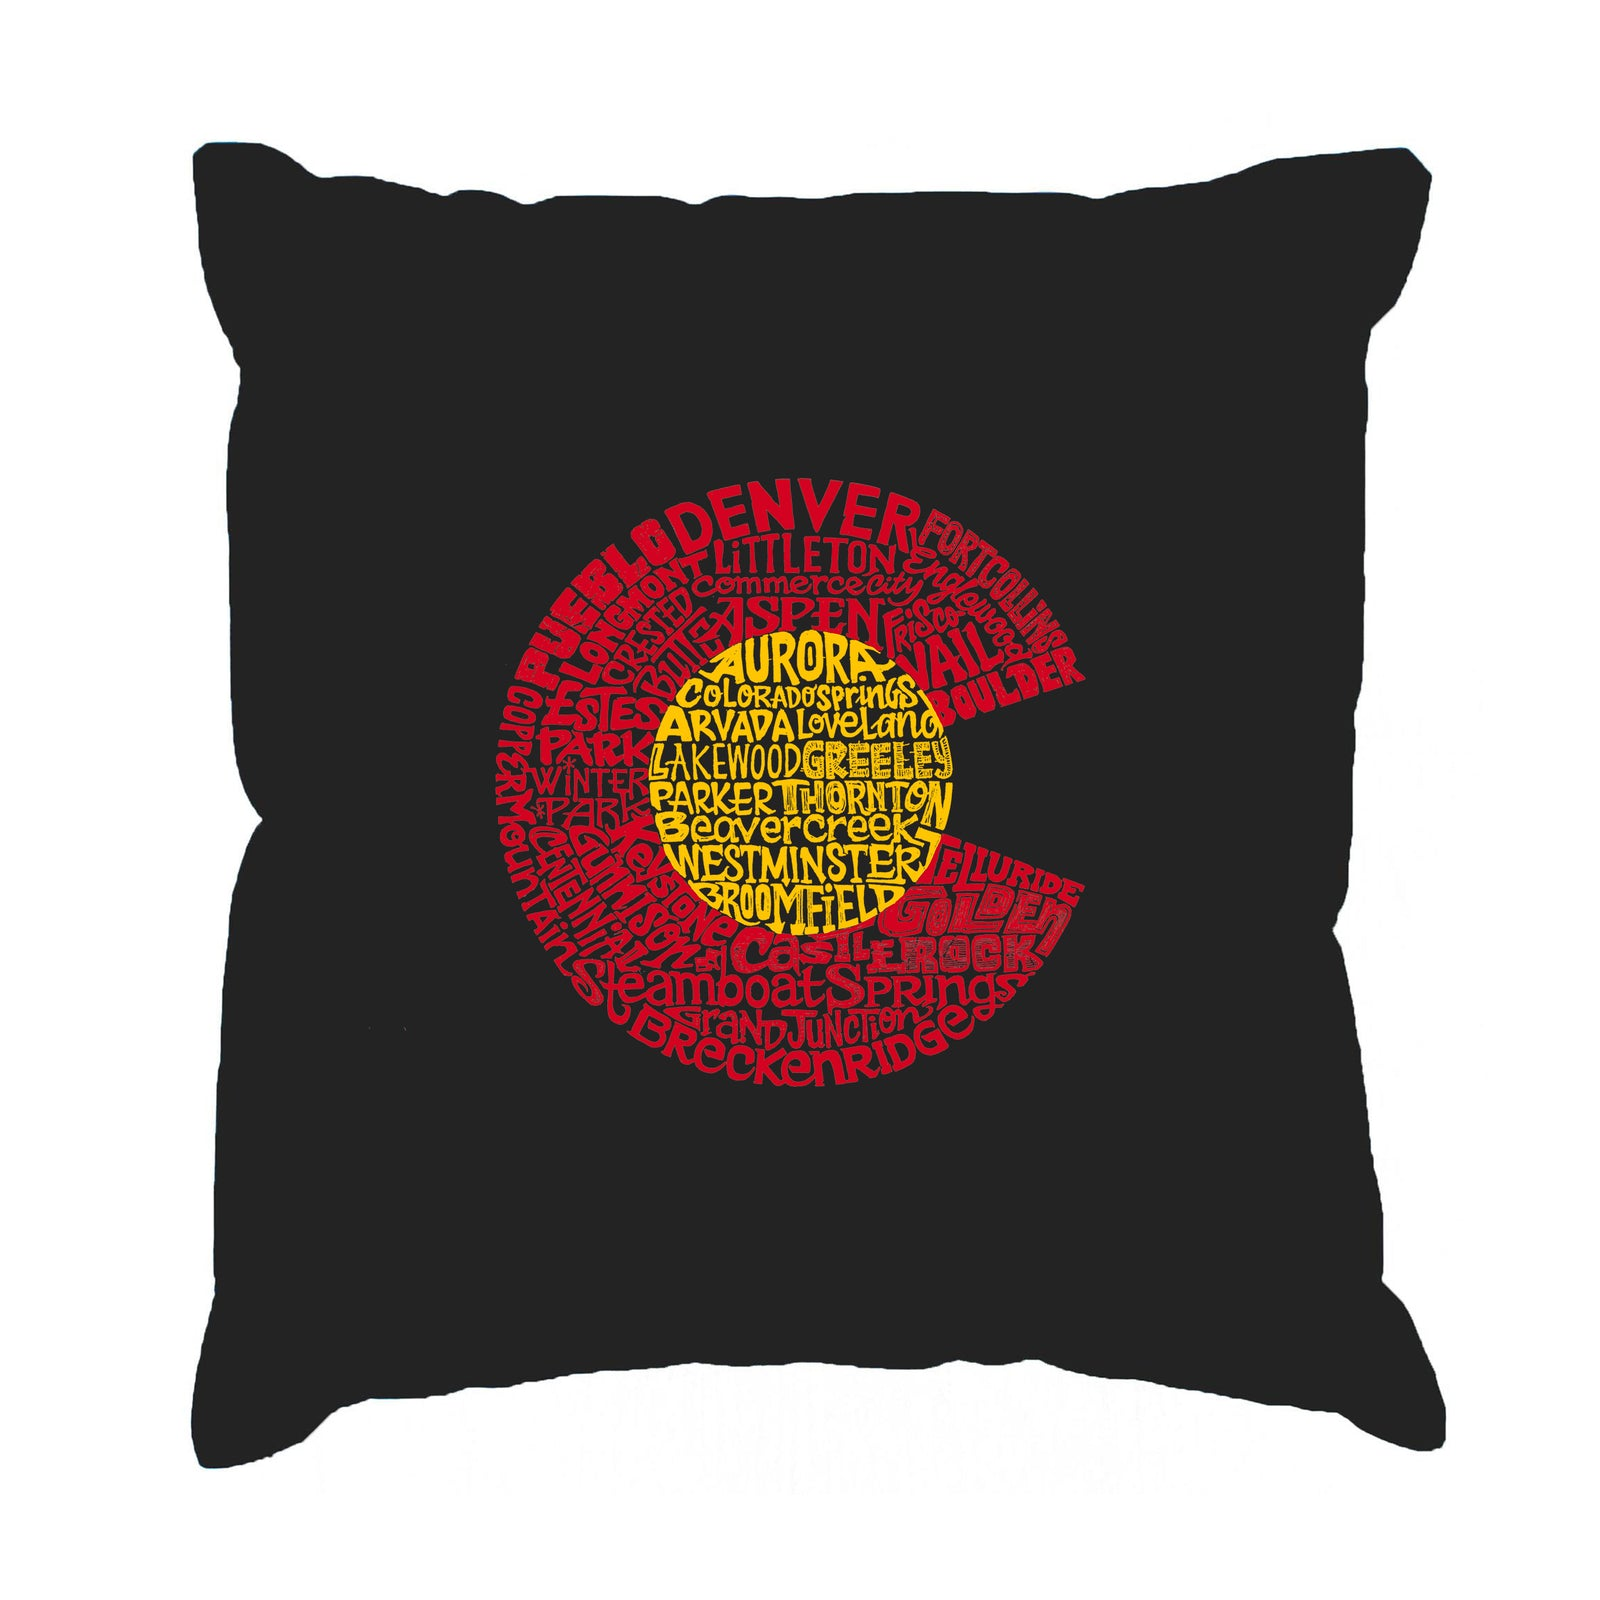 Throw Pillow Cover - Word Art - Colorado